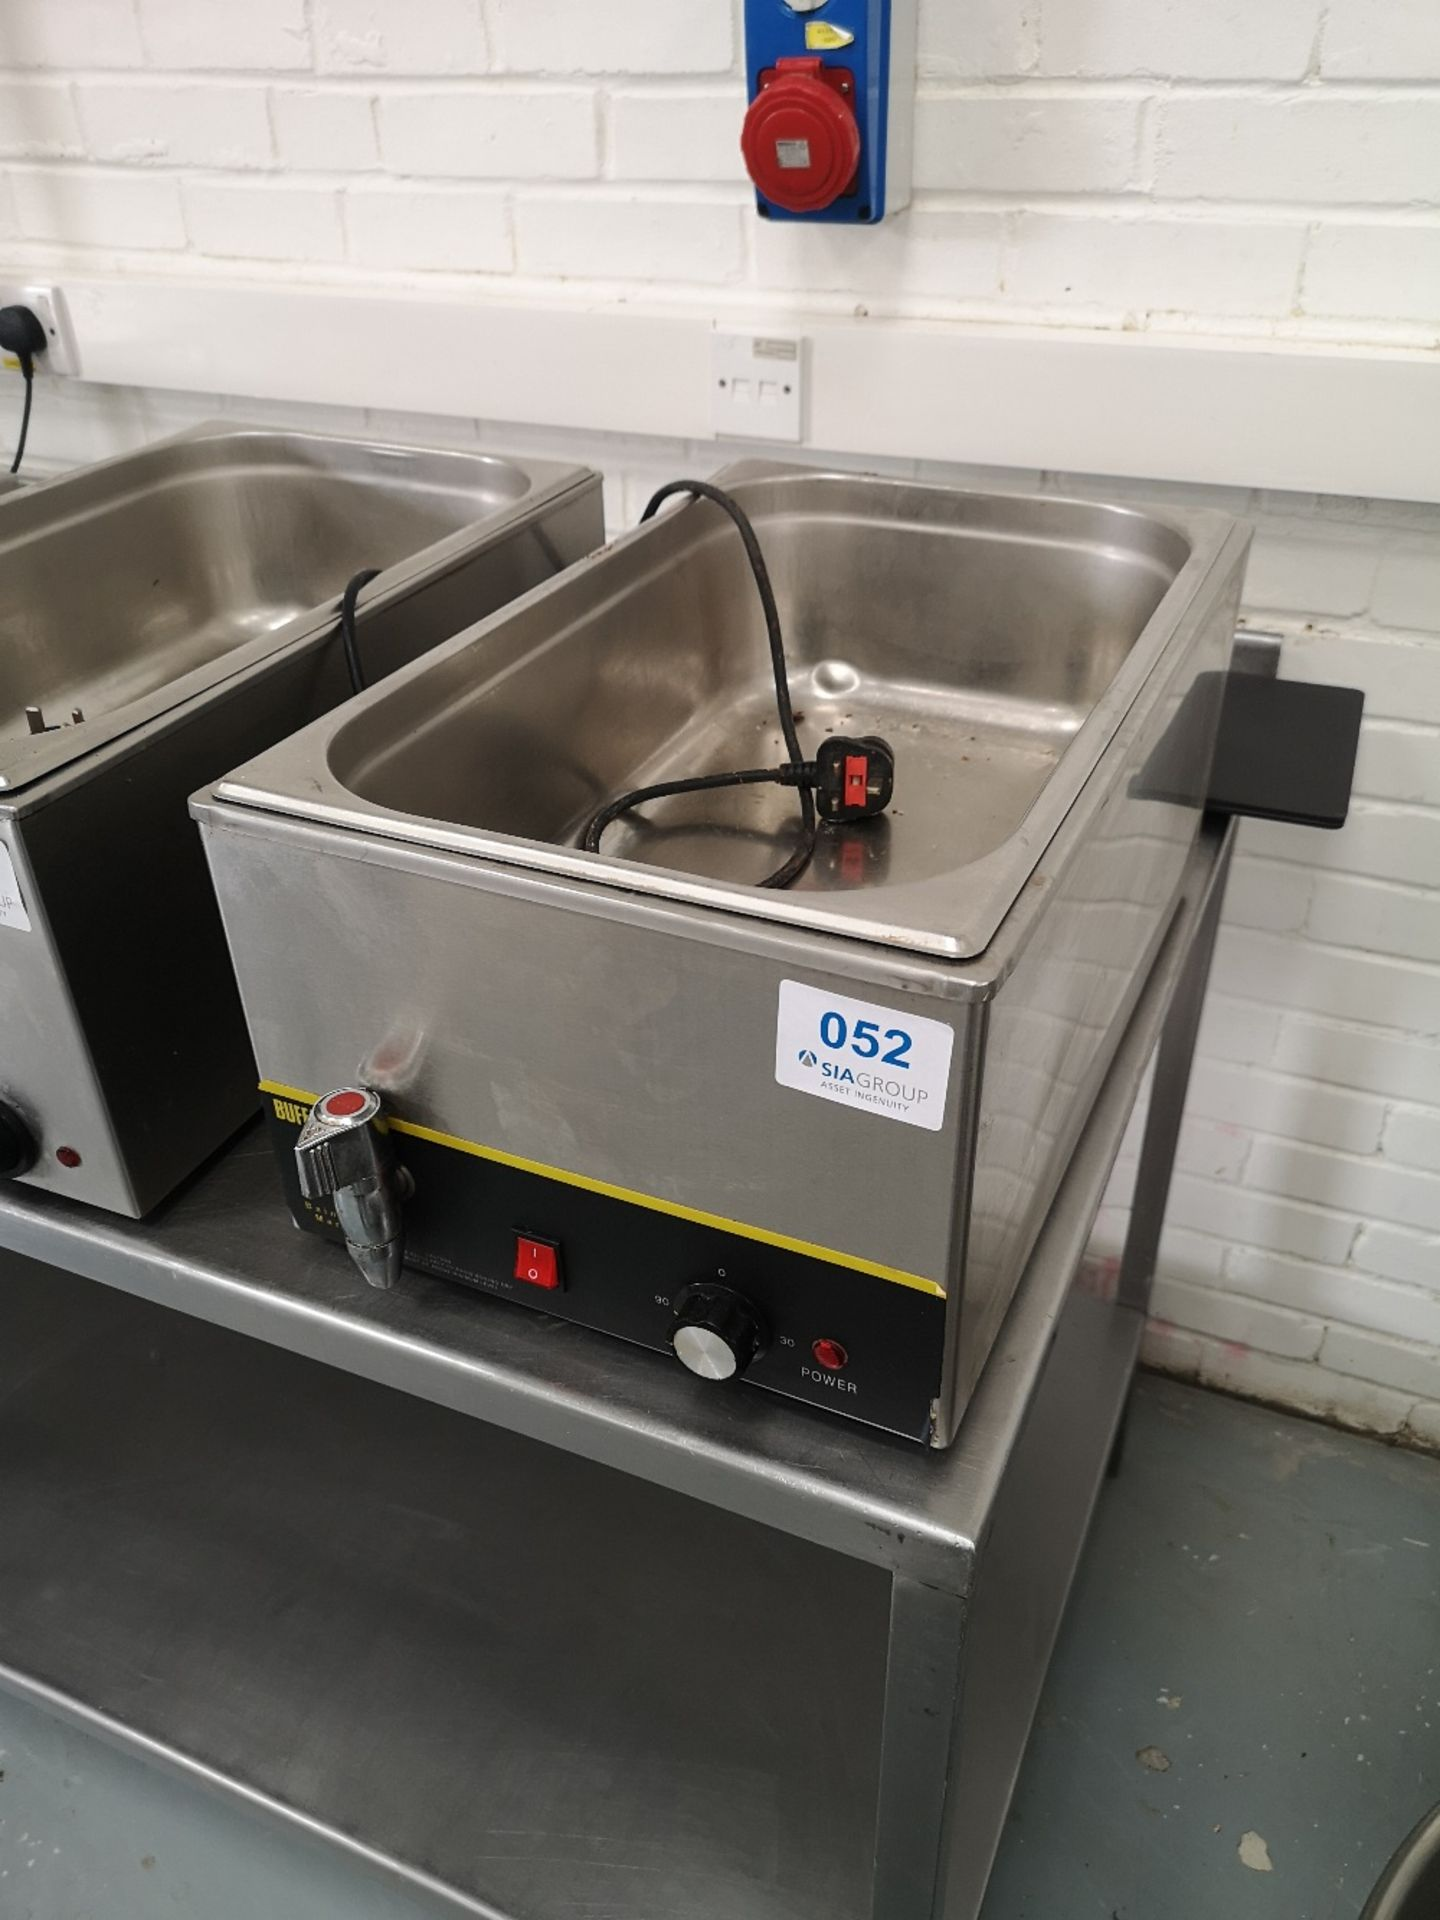 Buffalo S047 Wet Bain Marie With Tap - Image 2 of 4